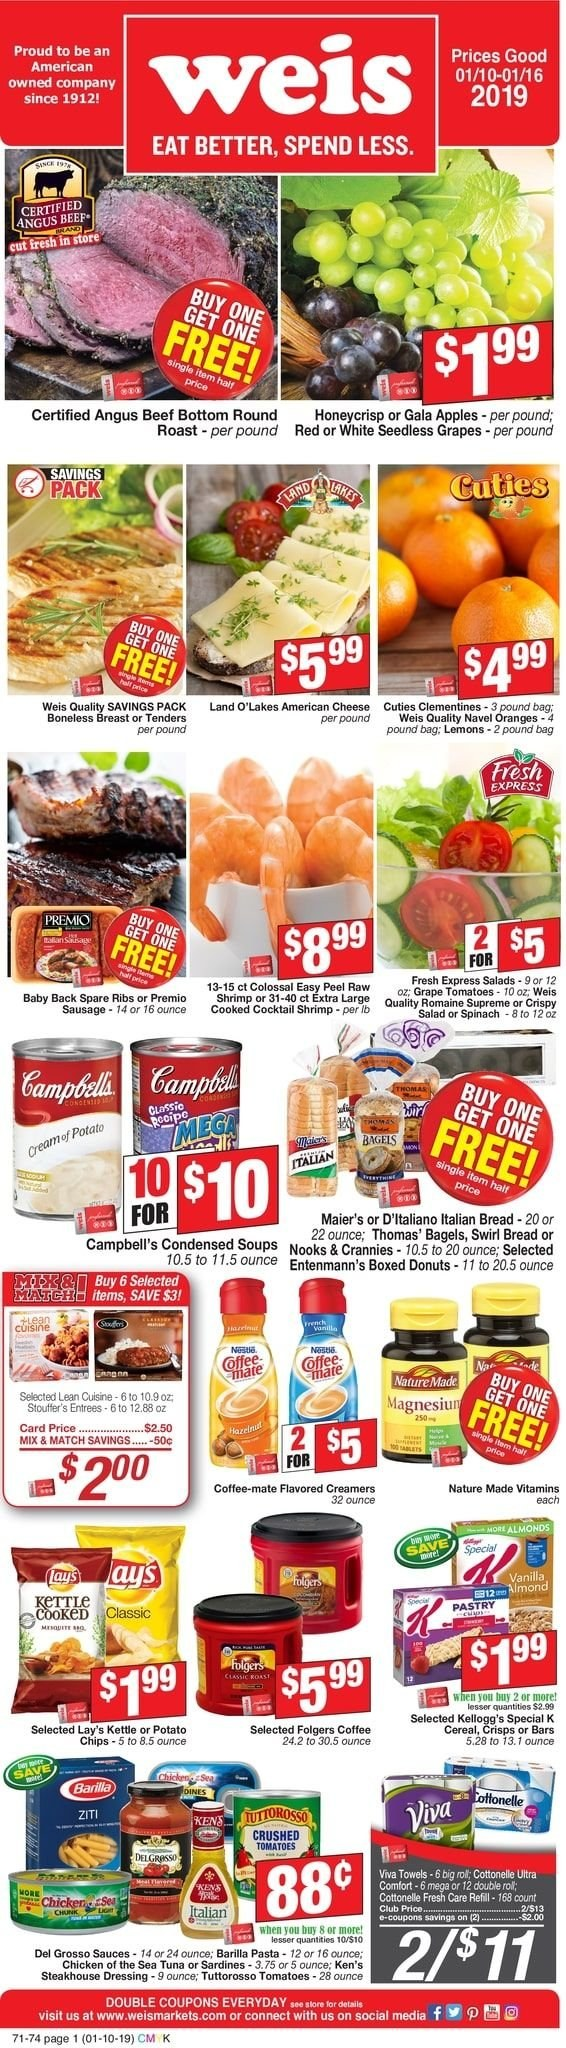 Weis Flyer - 01.10.2019 - 01.16.2019 - Sales products - american cheese, apple, baby back pork ribs, bag, bagels, beef meat, bottom, bread, campbell's, cereals, clementines, coffee, coffee-mate, cottonelle, crushed tomatoes, gala apples, grapes, lemons, mate, nature made, navel oranges, sardines, sausage, seedless grapes, shrimp, spinach, tomatoes, towel, tuna, chicken, oranges, pork spare ribs, cheese, dressing, donuts, cereal, pasta, lay's, salad, ribs. Page 1.